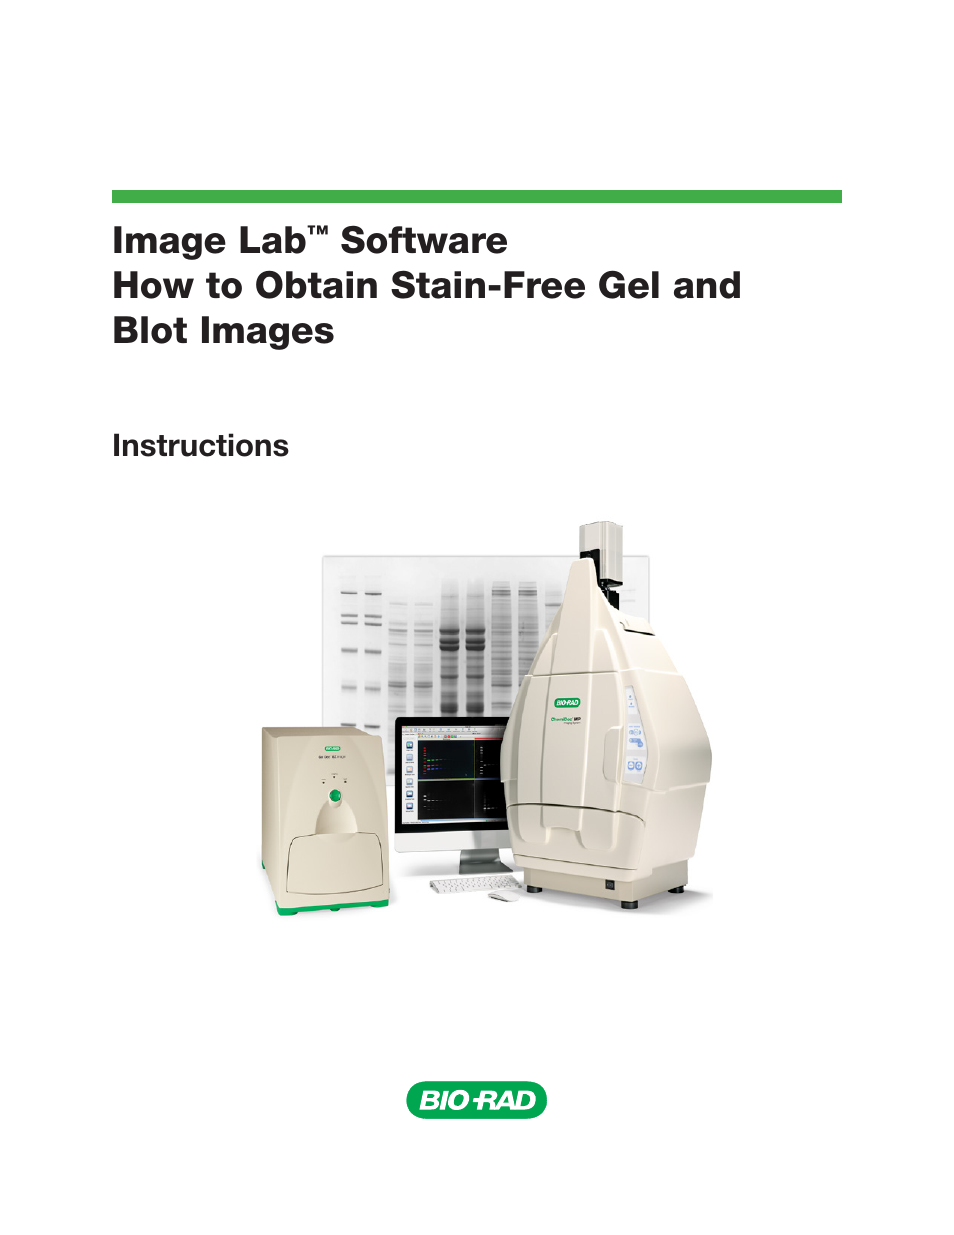 Bio rad gel doctm ez system user manual 16 pages also for Gel documentation system bio rad price